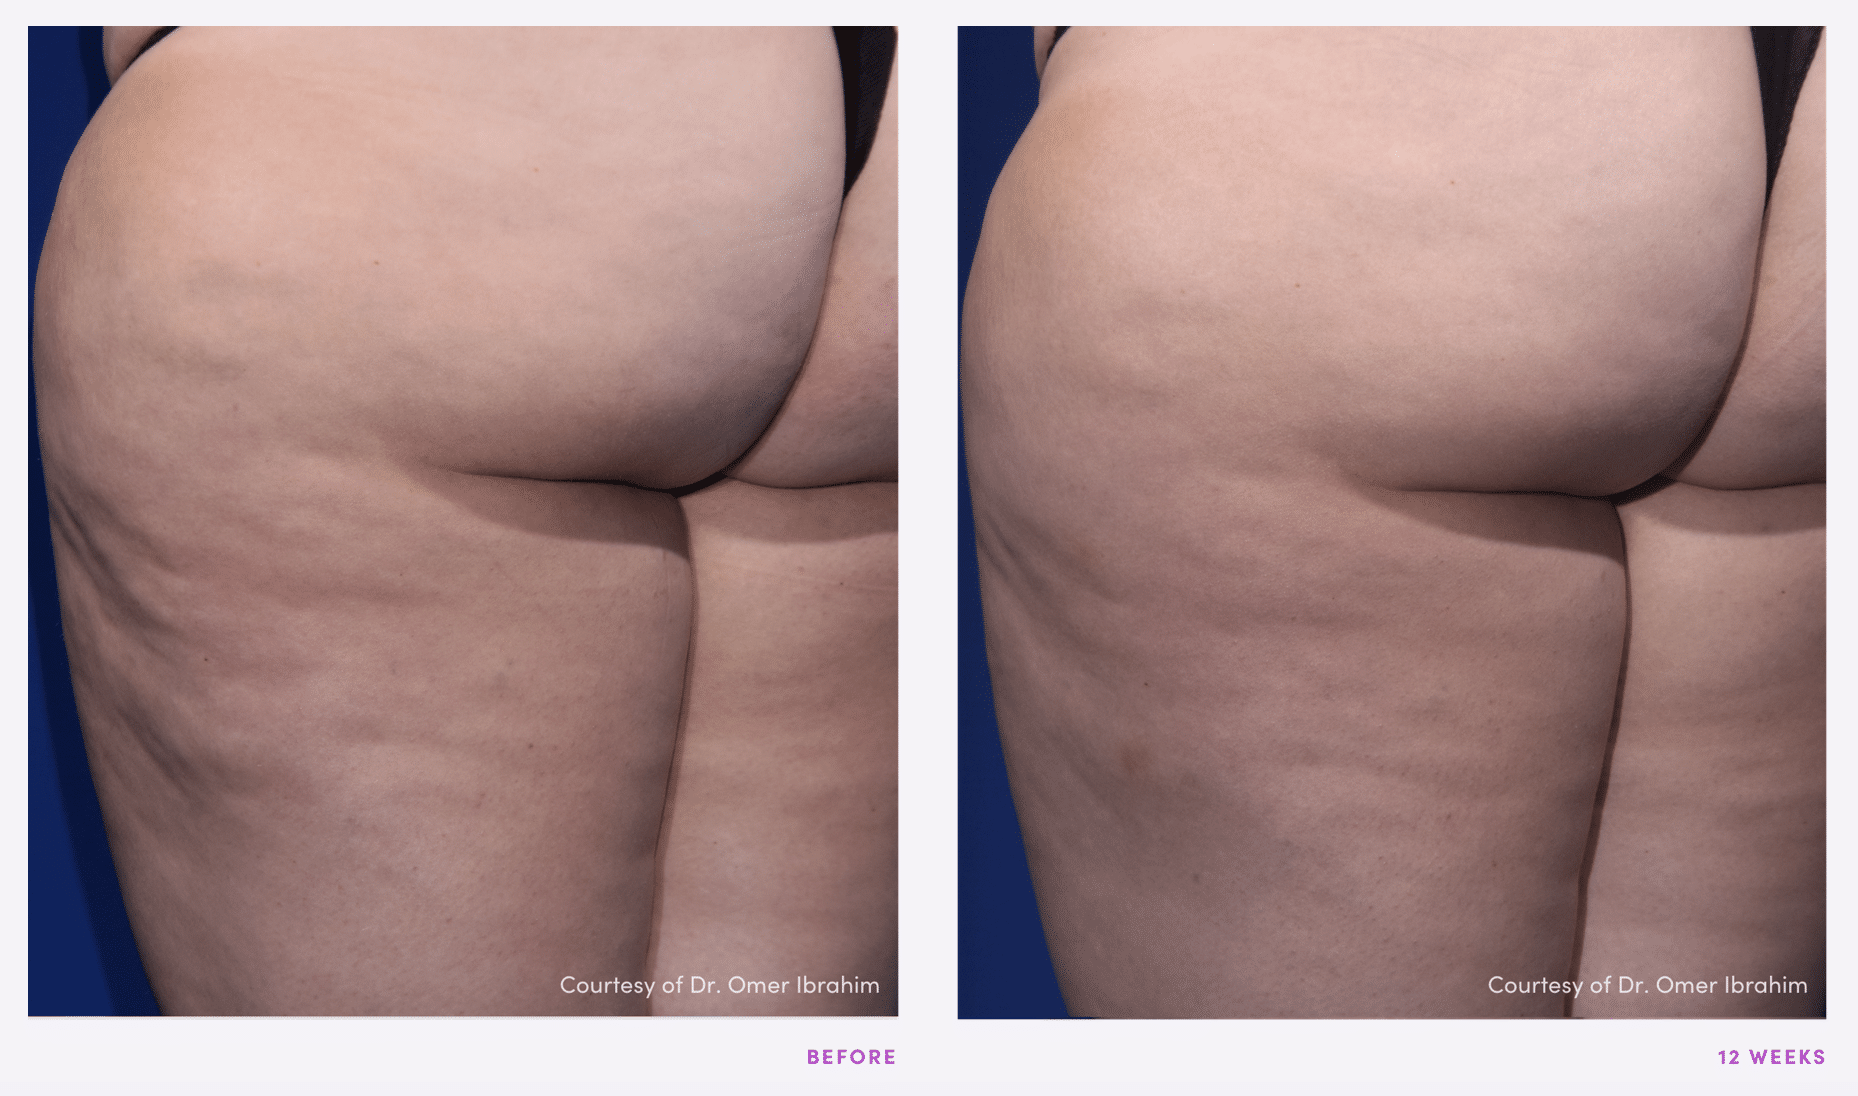 Resonic Cellulite Reduction Before and After pictures